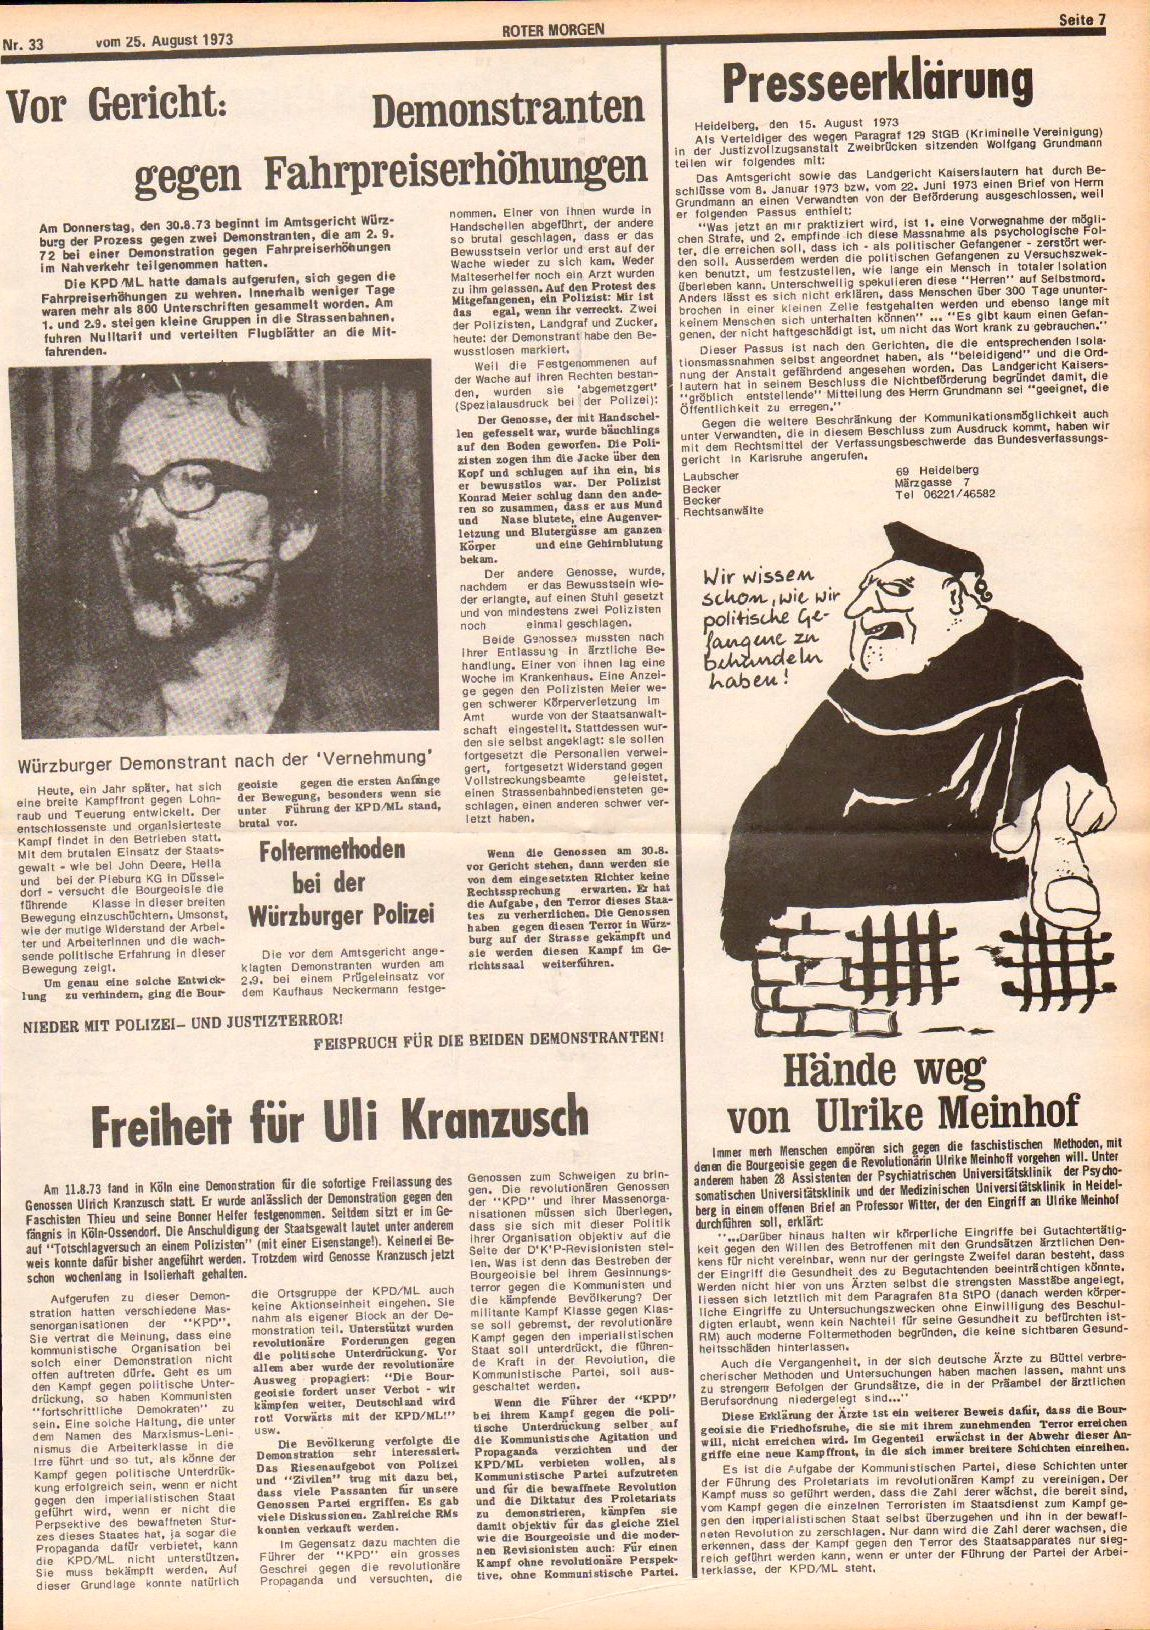 Roter Morgen, 7. Jg., 25. August 1973, Nr. 33, Seite 7